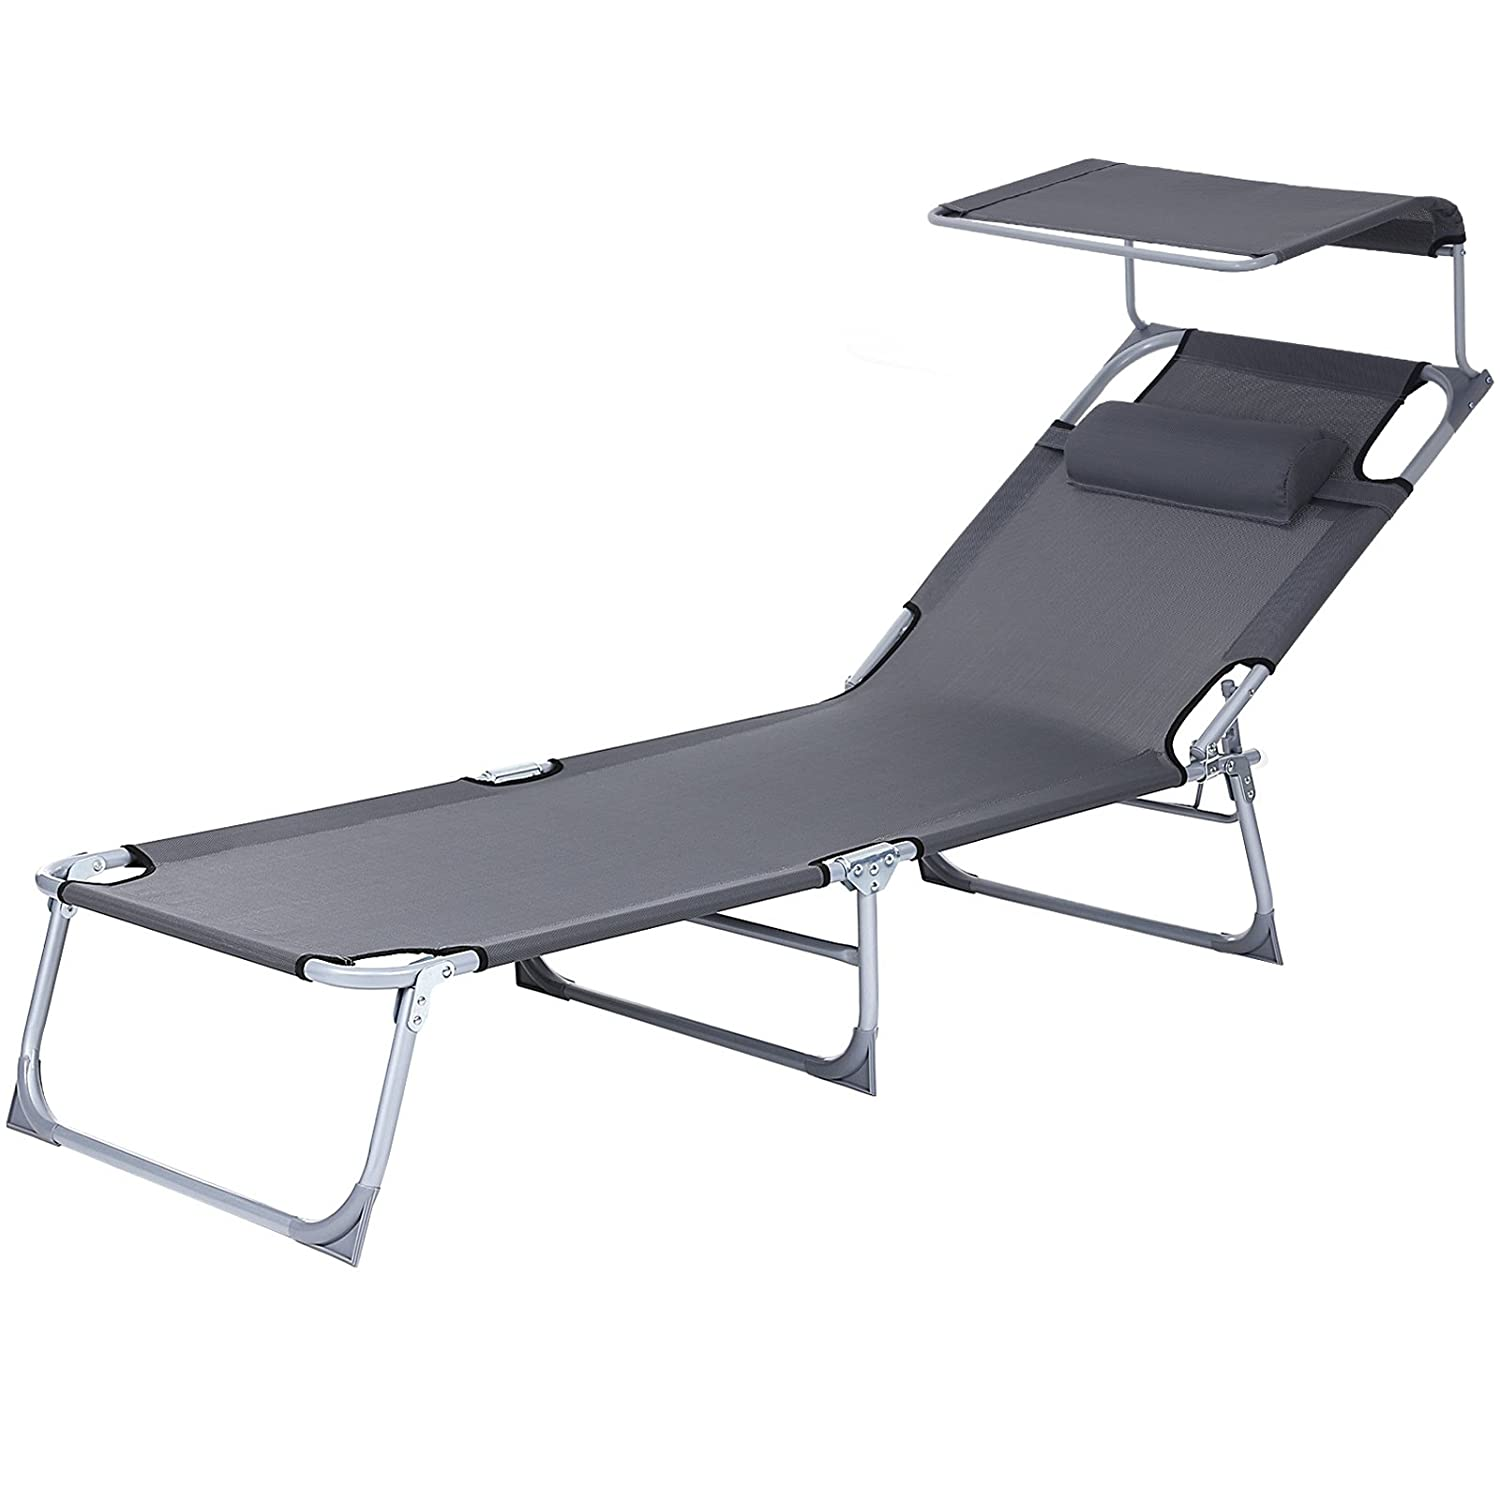 SONGMICS Bain De Soleil Inclinable Chaise Longue Transat Pliable et Pare Soleil Réglable 193 × 62 × 30 cm Charge 250 kg Transportable GCB19U